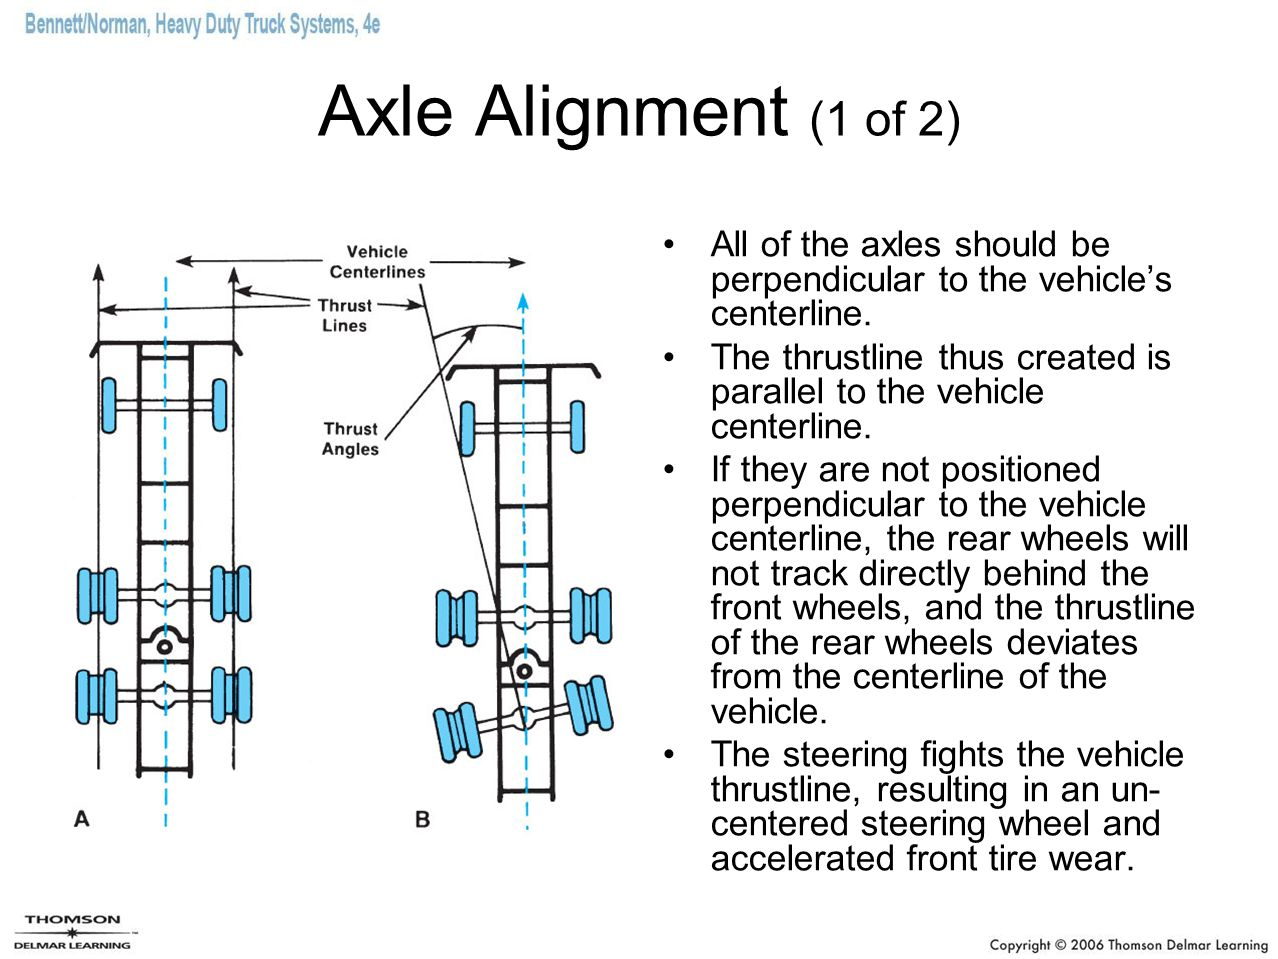 Axle Alignment (2 of 2) On a single-axle vehicle, the rear-axle thrustline can be off if the entire axle is offset or if only one wheel has an improper toe angle.